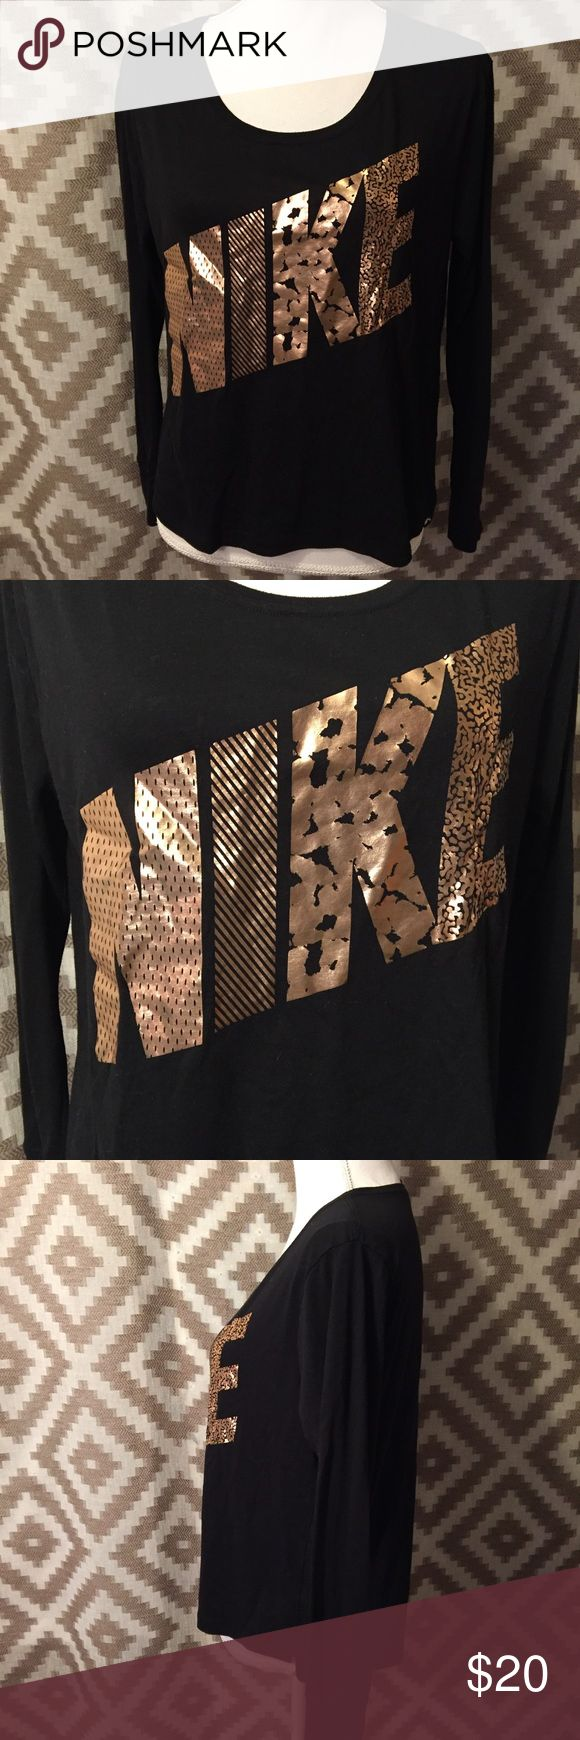 "Nike Rose Gold & Black Slouchy Top! Perfect condition Nike black Slouchy long sleeve tee with a metallic rose gold logo on the front! Size small, armpit to armpit measurement is 21"", sleeve length is 17"", length from shoulder is 23.5"" in the back, 21.5"" in the front! Nike Tops Tees - Long Sleeve"